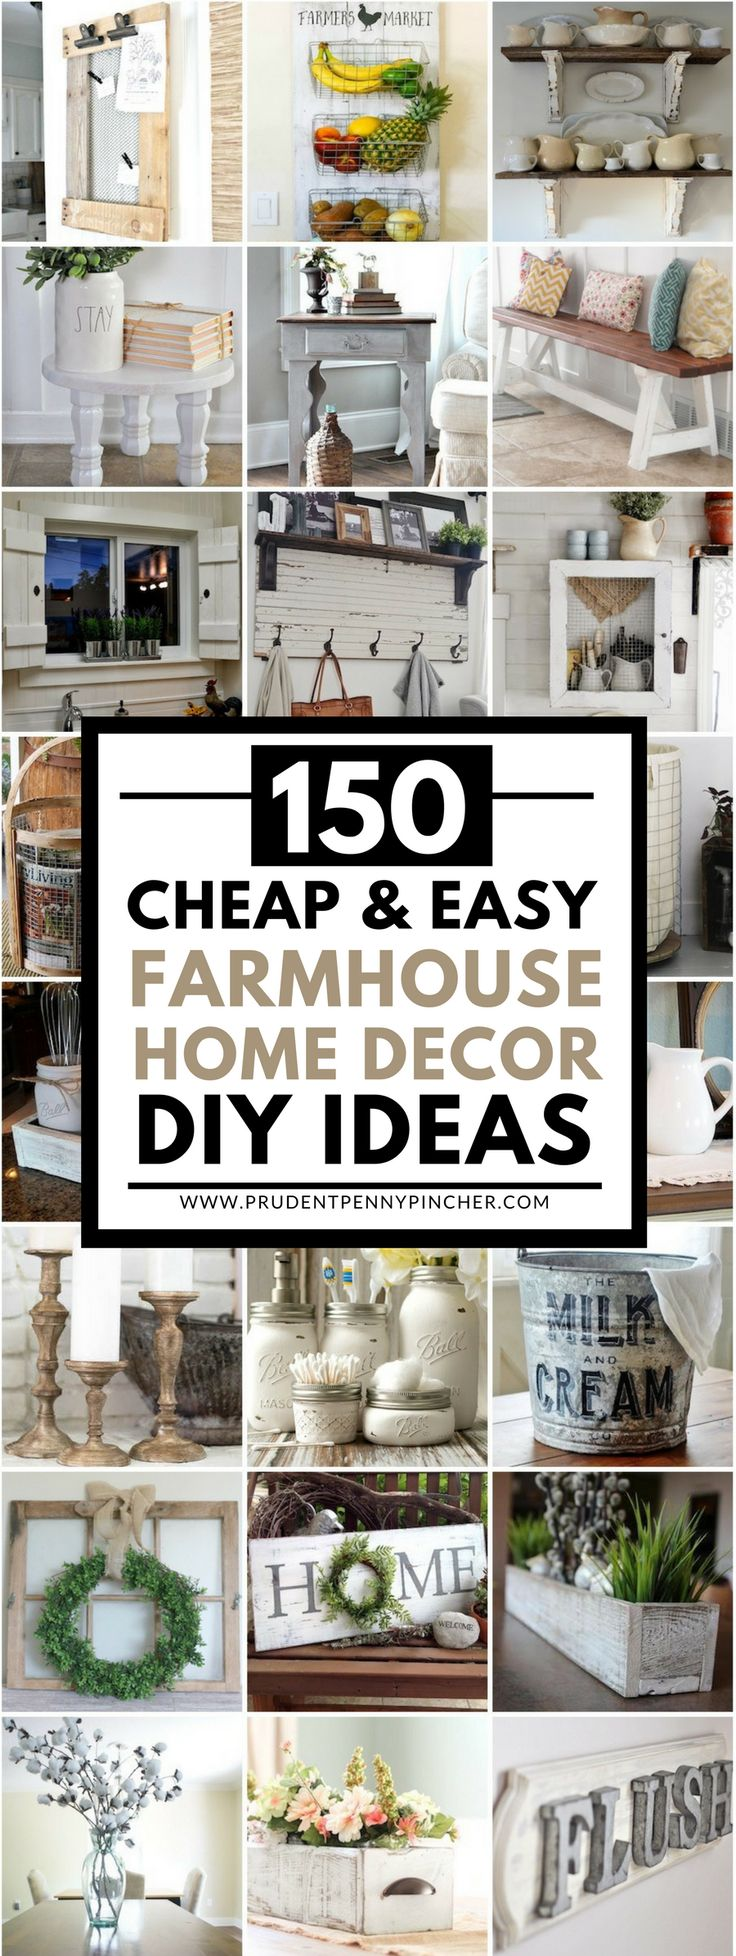 Diy Home Design Ideas diy home decor illustrated diy home decor illustrated calendar art diy home design ideas 150 Cheap And Easy Diy Farmhouse Style Home Decor Ideas